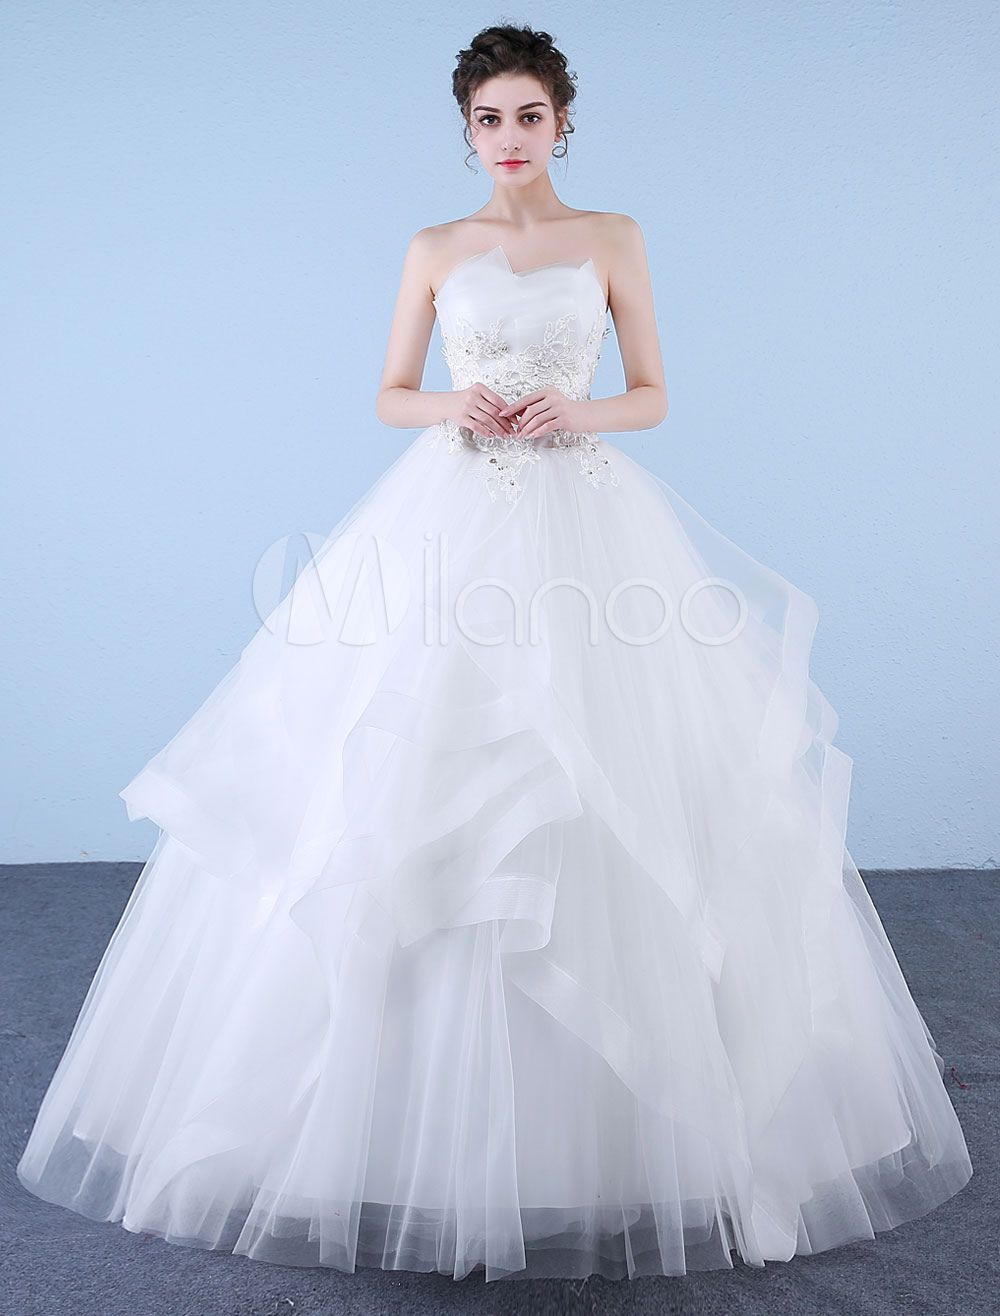 Princess Ball Gown Wedding Dresses Strapless Ivory Lace